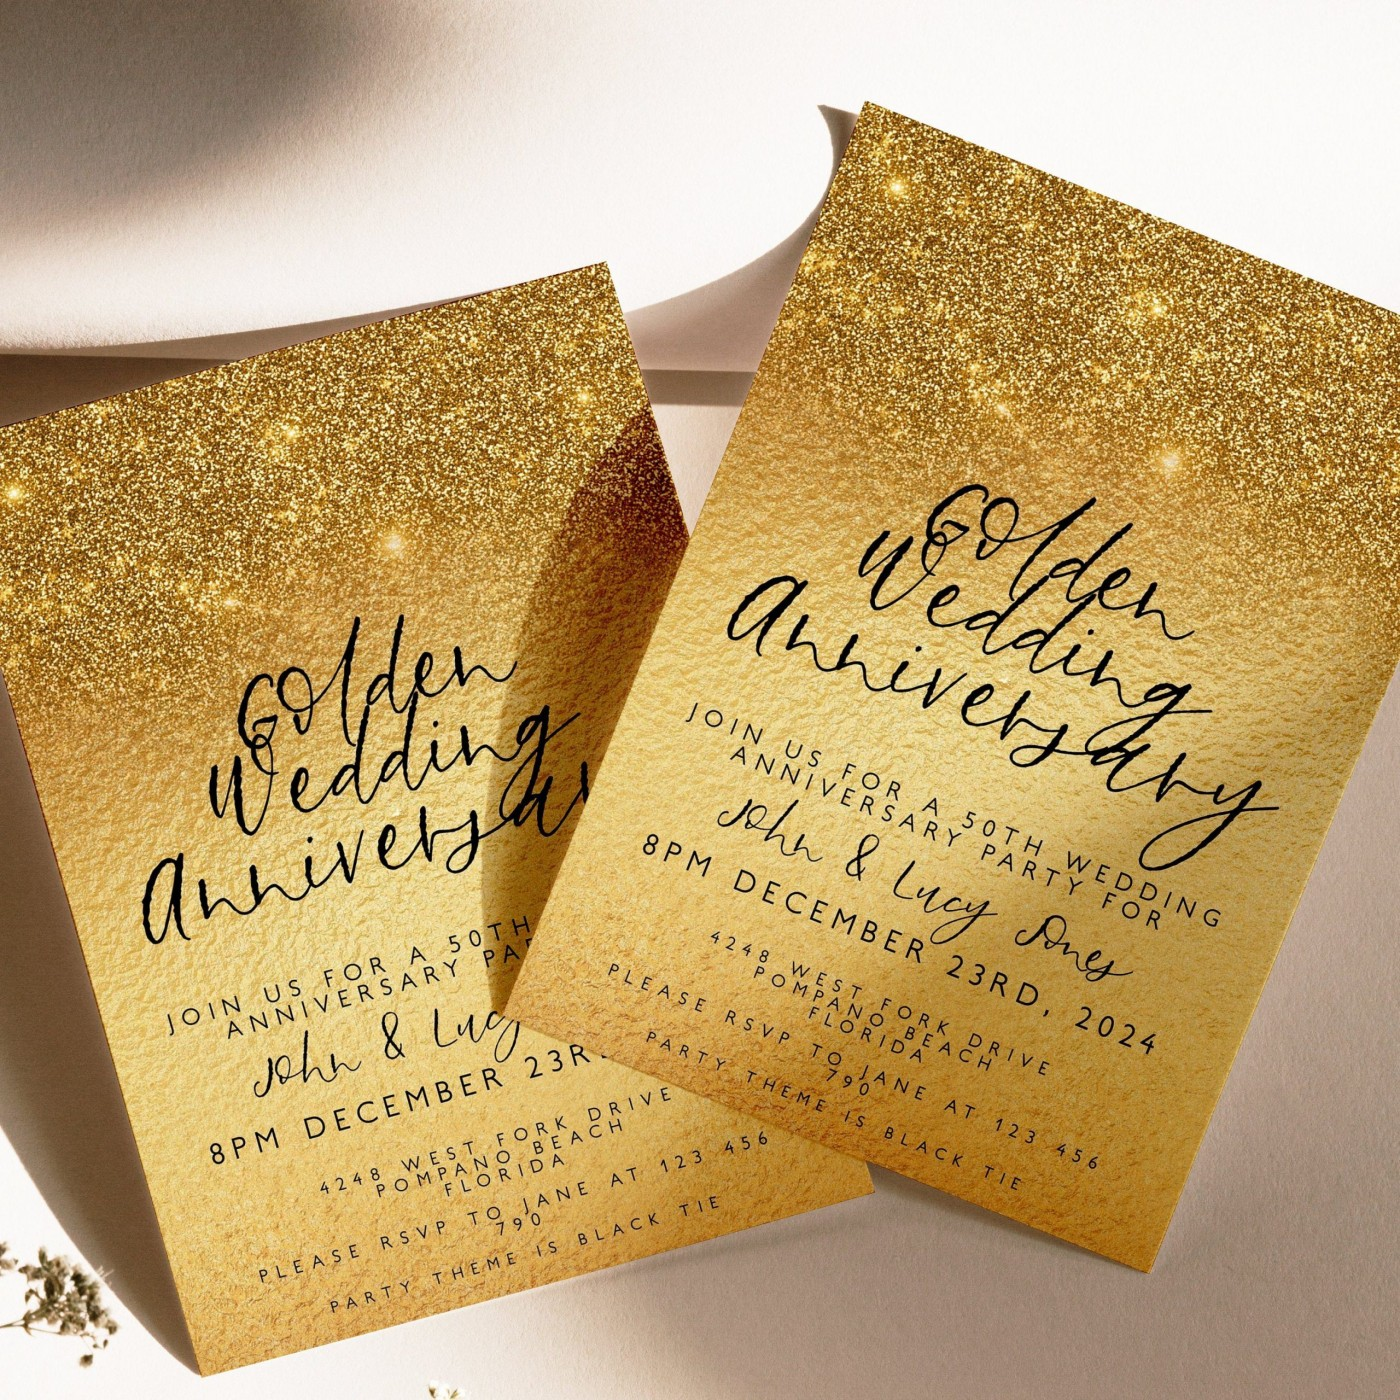 000 Exceptional 50th Anniversary Party Invitation Template Example  Wedding Free Download Microsoft Word1400